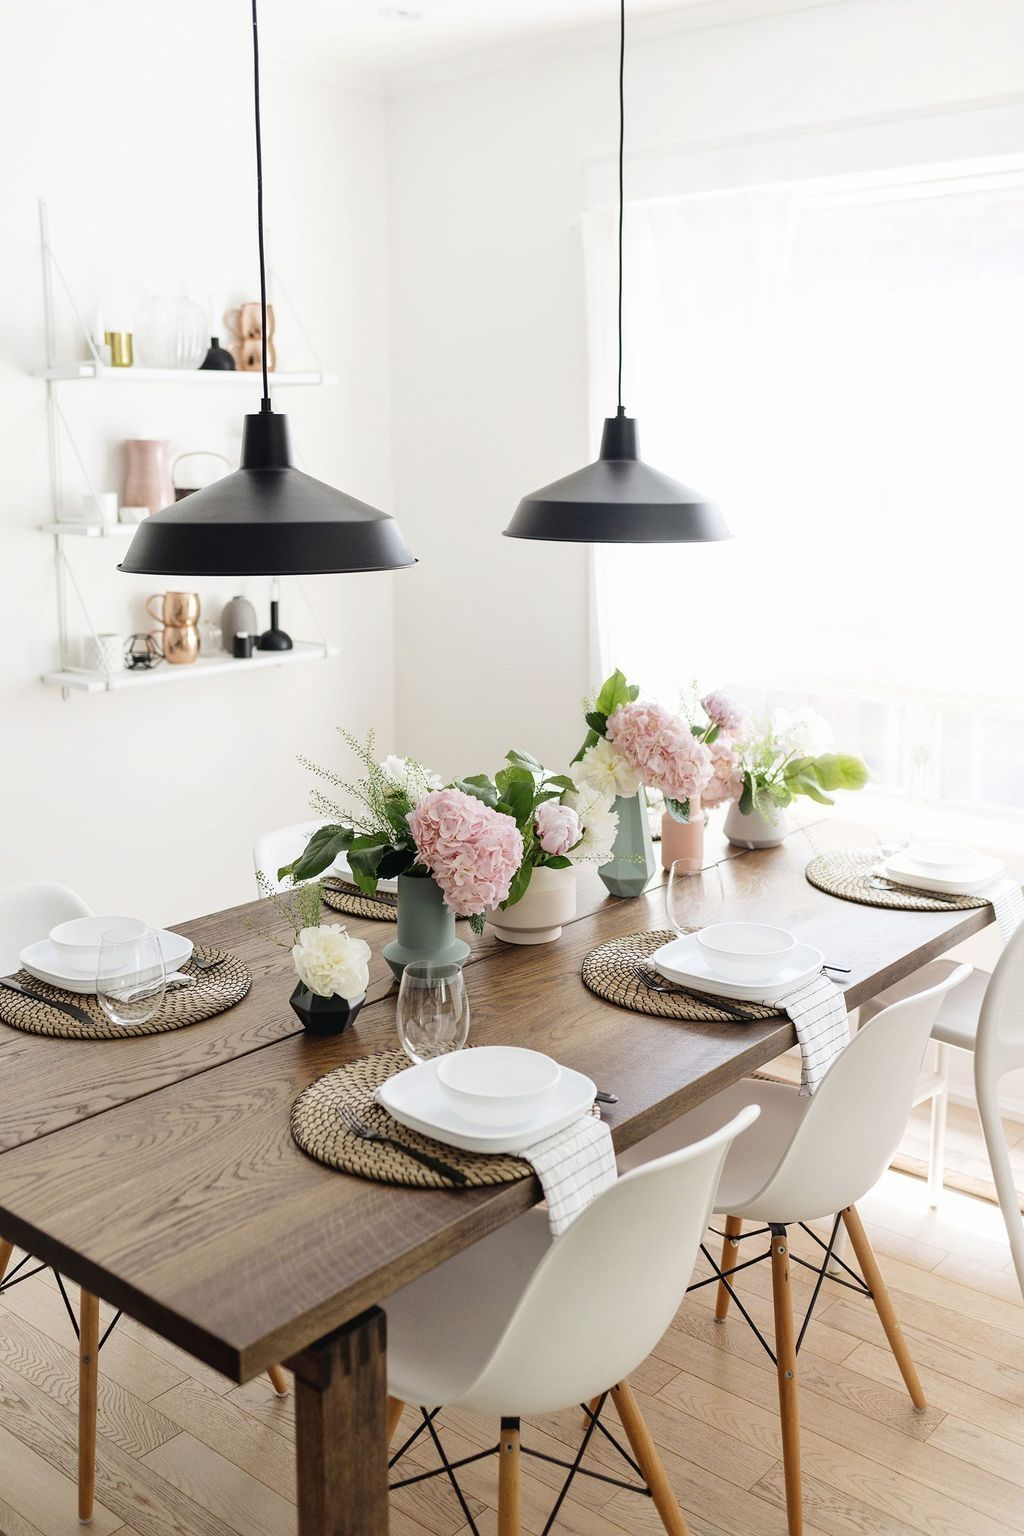 45 Outstanding Spring Table Setting Ideas For Table Decoration In 2020 Scandinavian Table Dining Room Table Decor Kitchen Table Decor